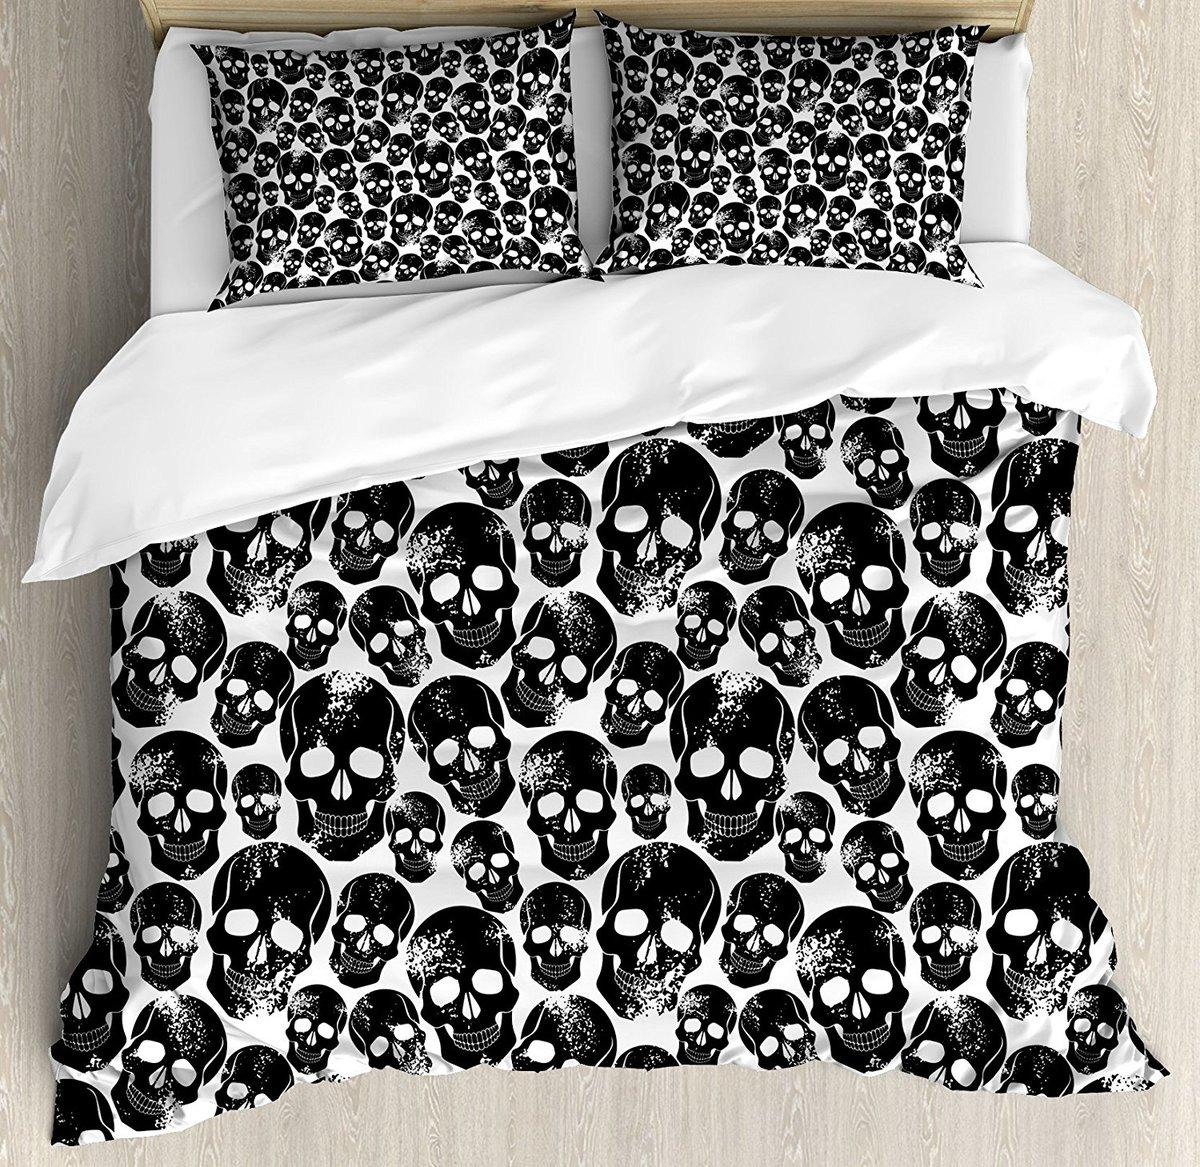 Gothic Duvet Cover Set Grunge Black Human Skulls on White Backdrop Evil Men Fear Horror Death Skeleton Decor 4 Piece Bedding Set